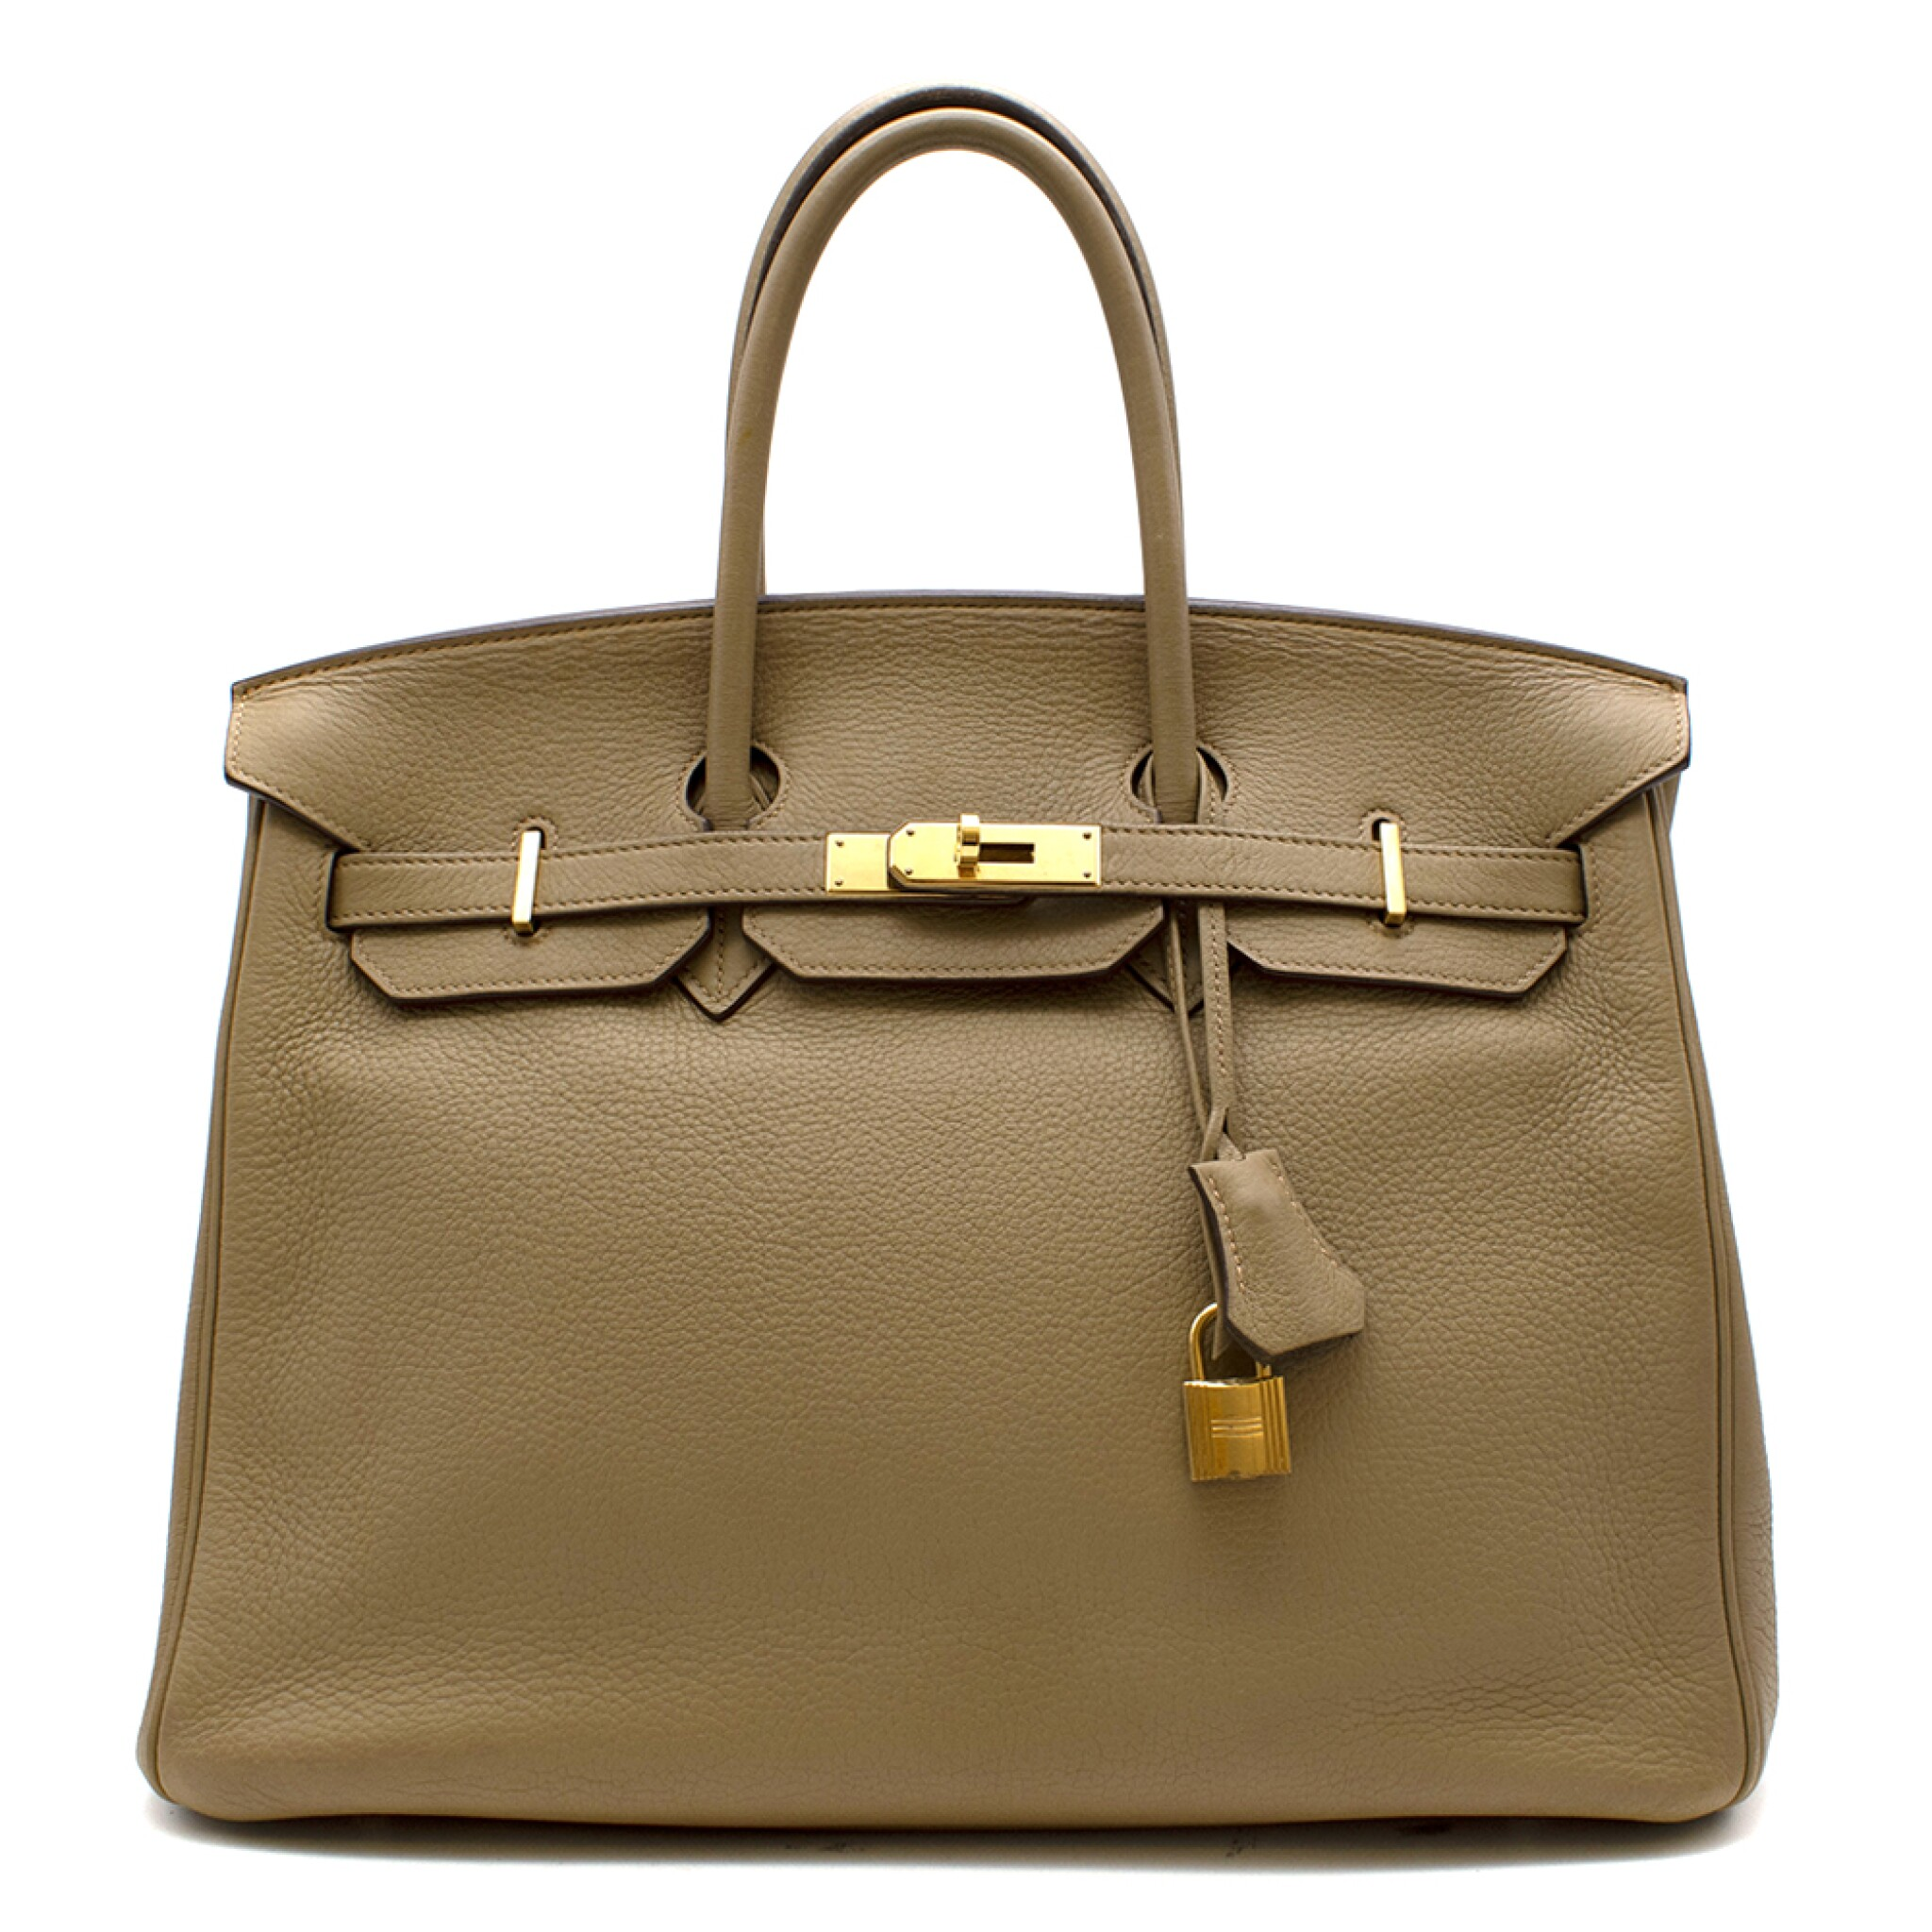 View full screen - View 1 of Lot 31. HERMÈS | CARDAMOME BIRKIN 35 IN TAURILLION CLEMENCE LEATHER WITH GOLD HARDWARE, 2008.